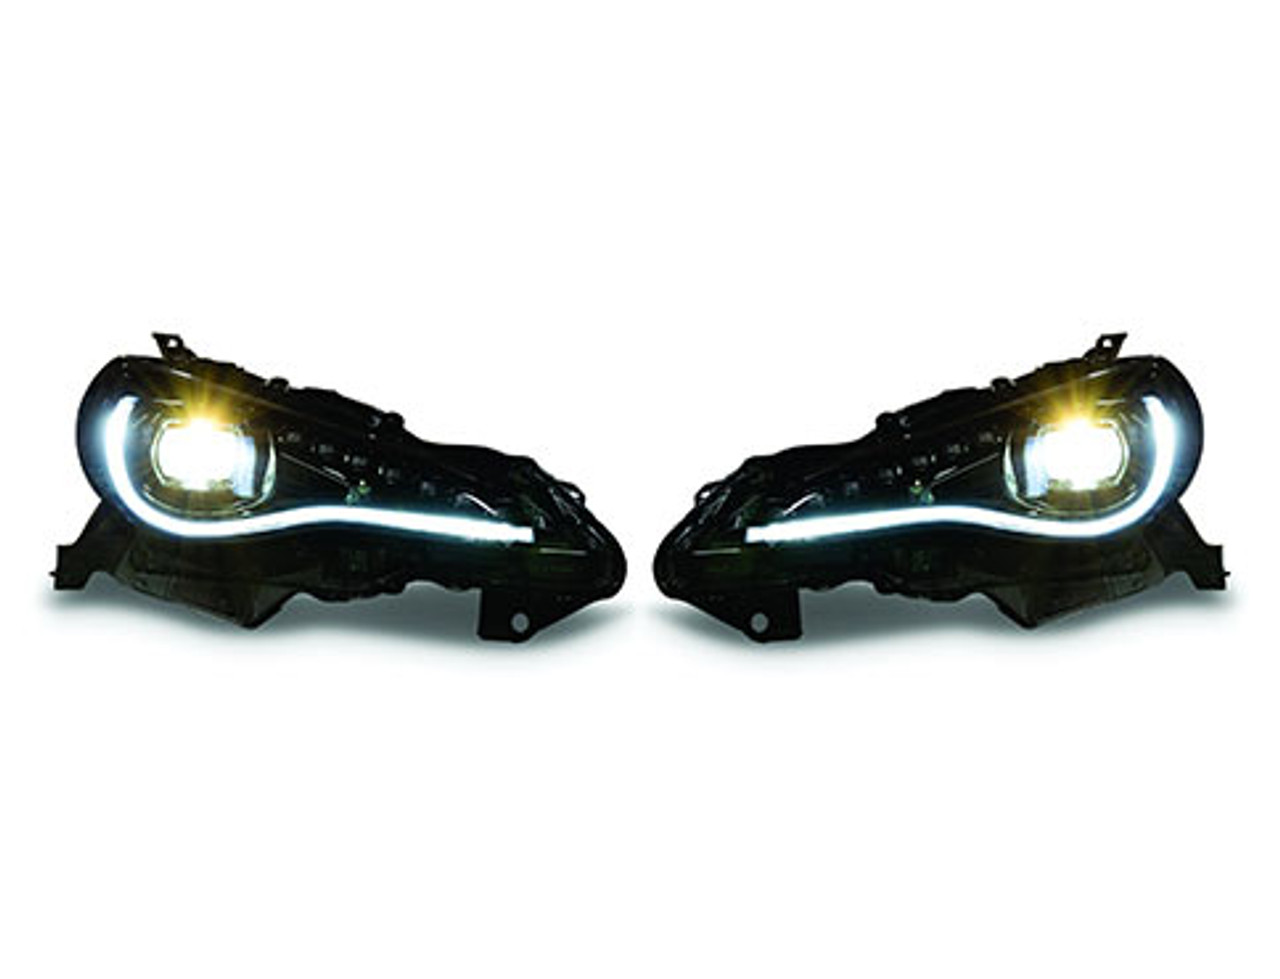 Toyota 86 / Scion FR-S Blacked out LED Headlight units